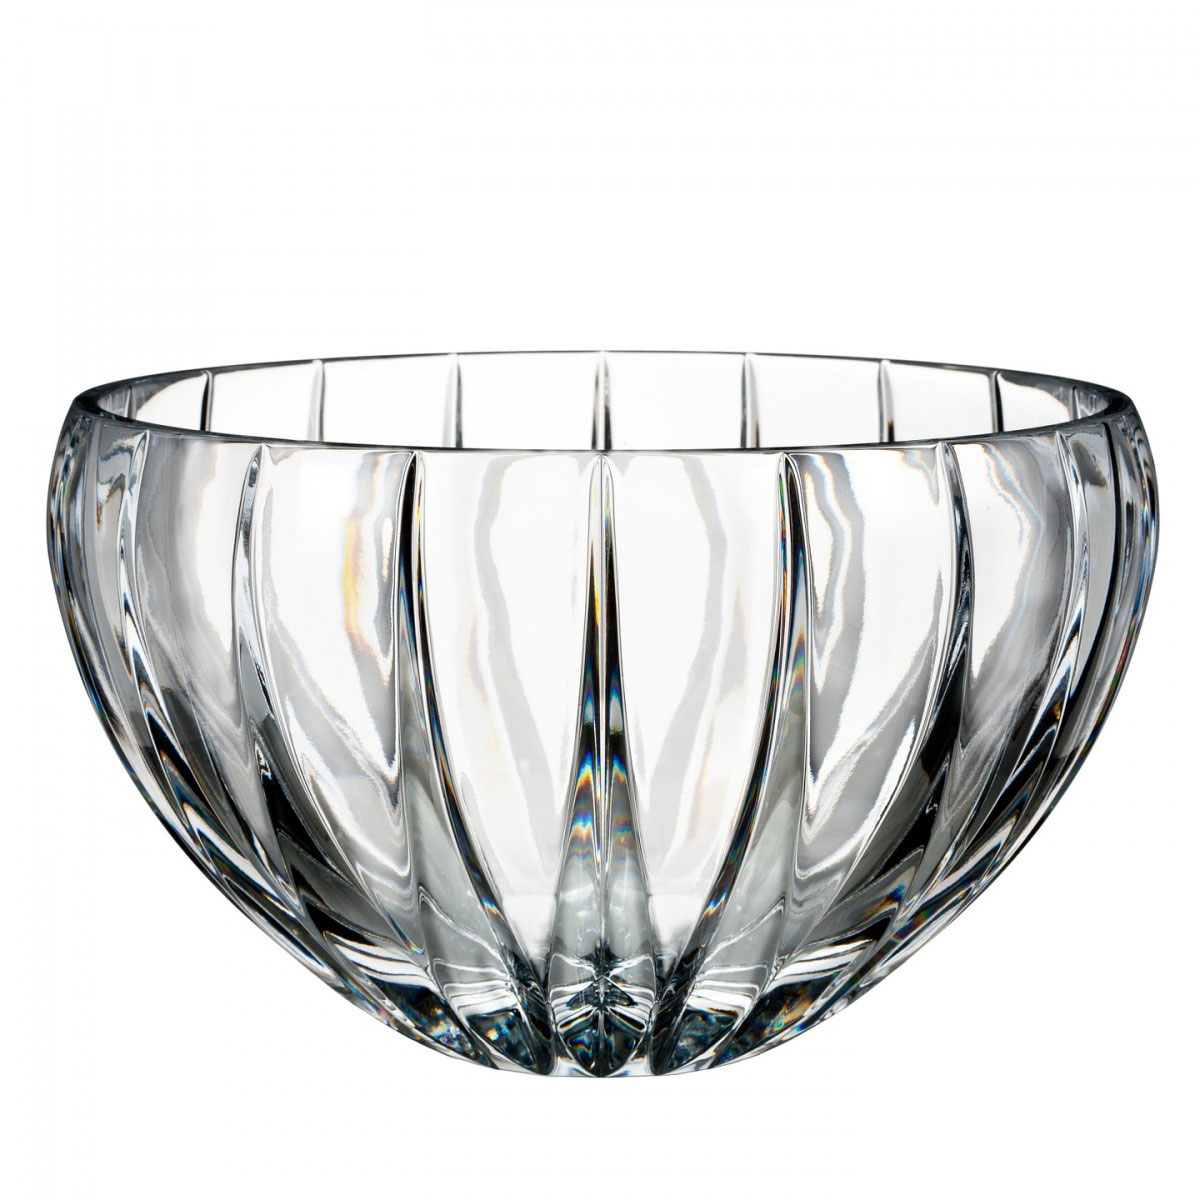 "Marquis by Waterford Crystal, Phoenix 10"" Crystal Bowl"